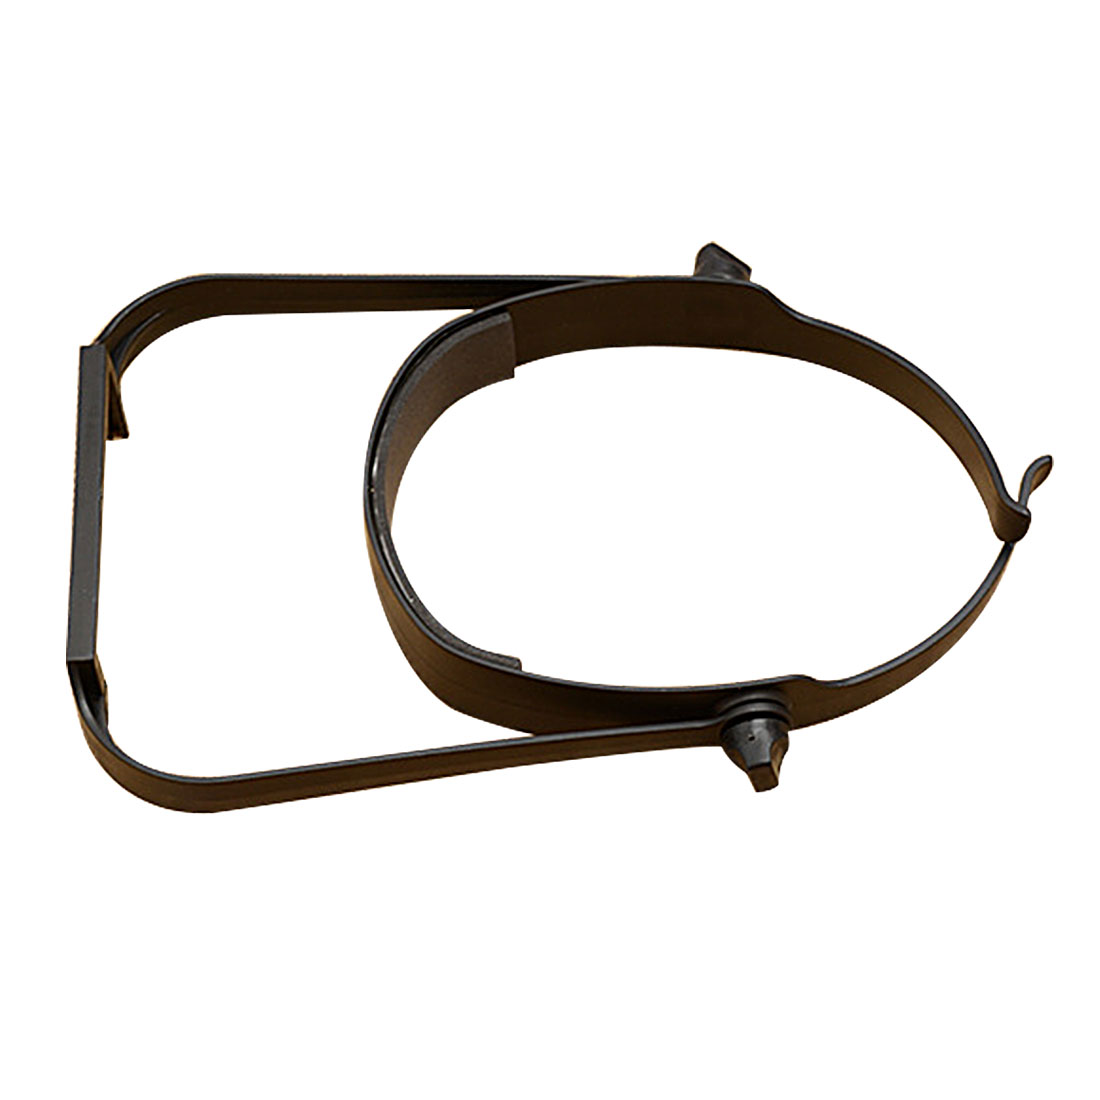 Pro 1.6x 2.0x 2.5x 3.5x Head Headband Replaceable Lens Loupe Magnifier Magnify Glass Lens loupe made of optical glassPro 1.6x 2.0x 2.5x 3.5x Head Headband Replaceable Lens Loupe Magnifier Magnify Glass Lens loupe made of optical glass